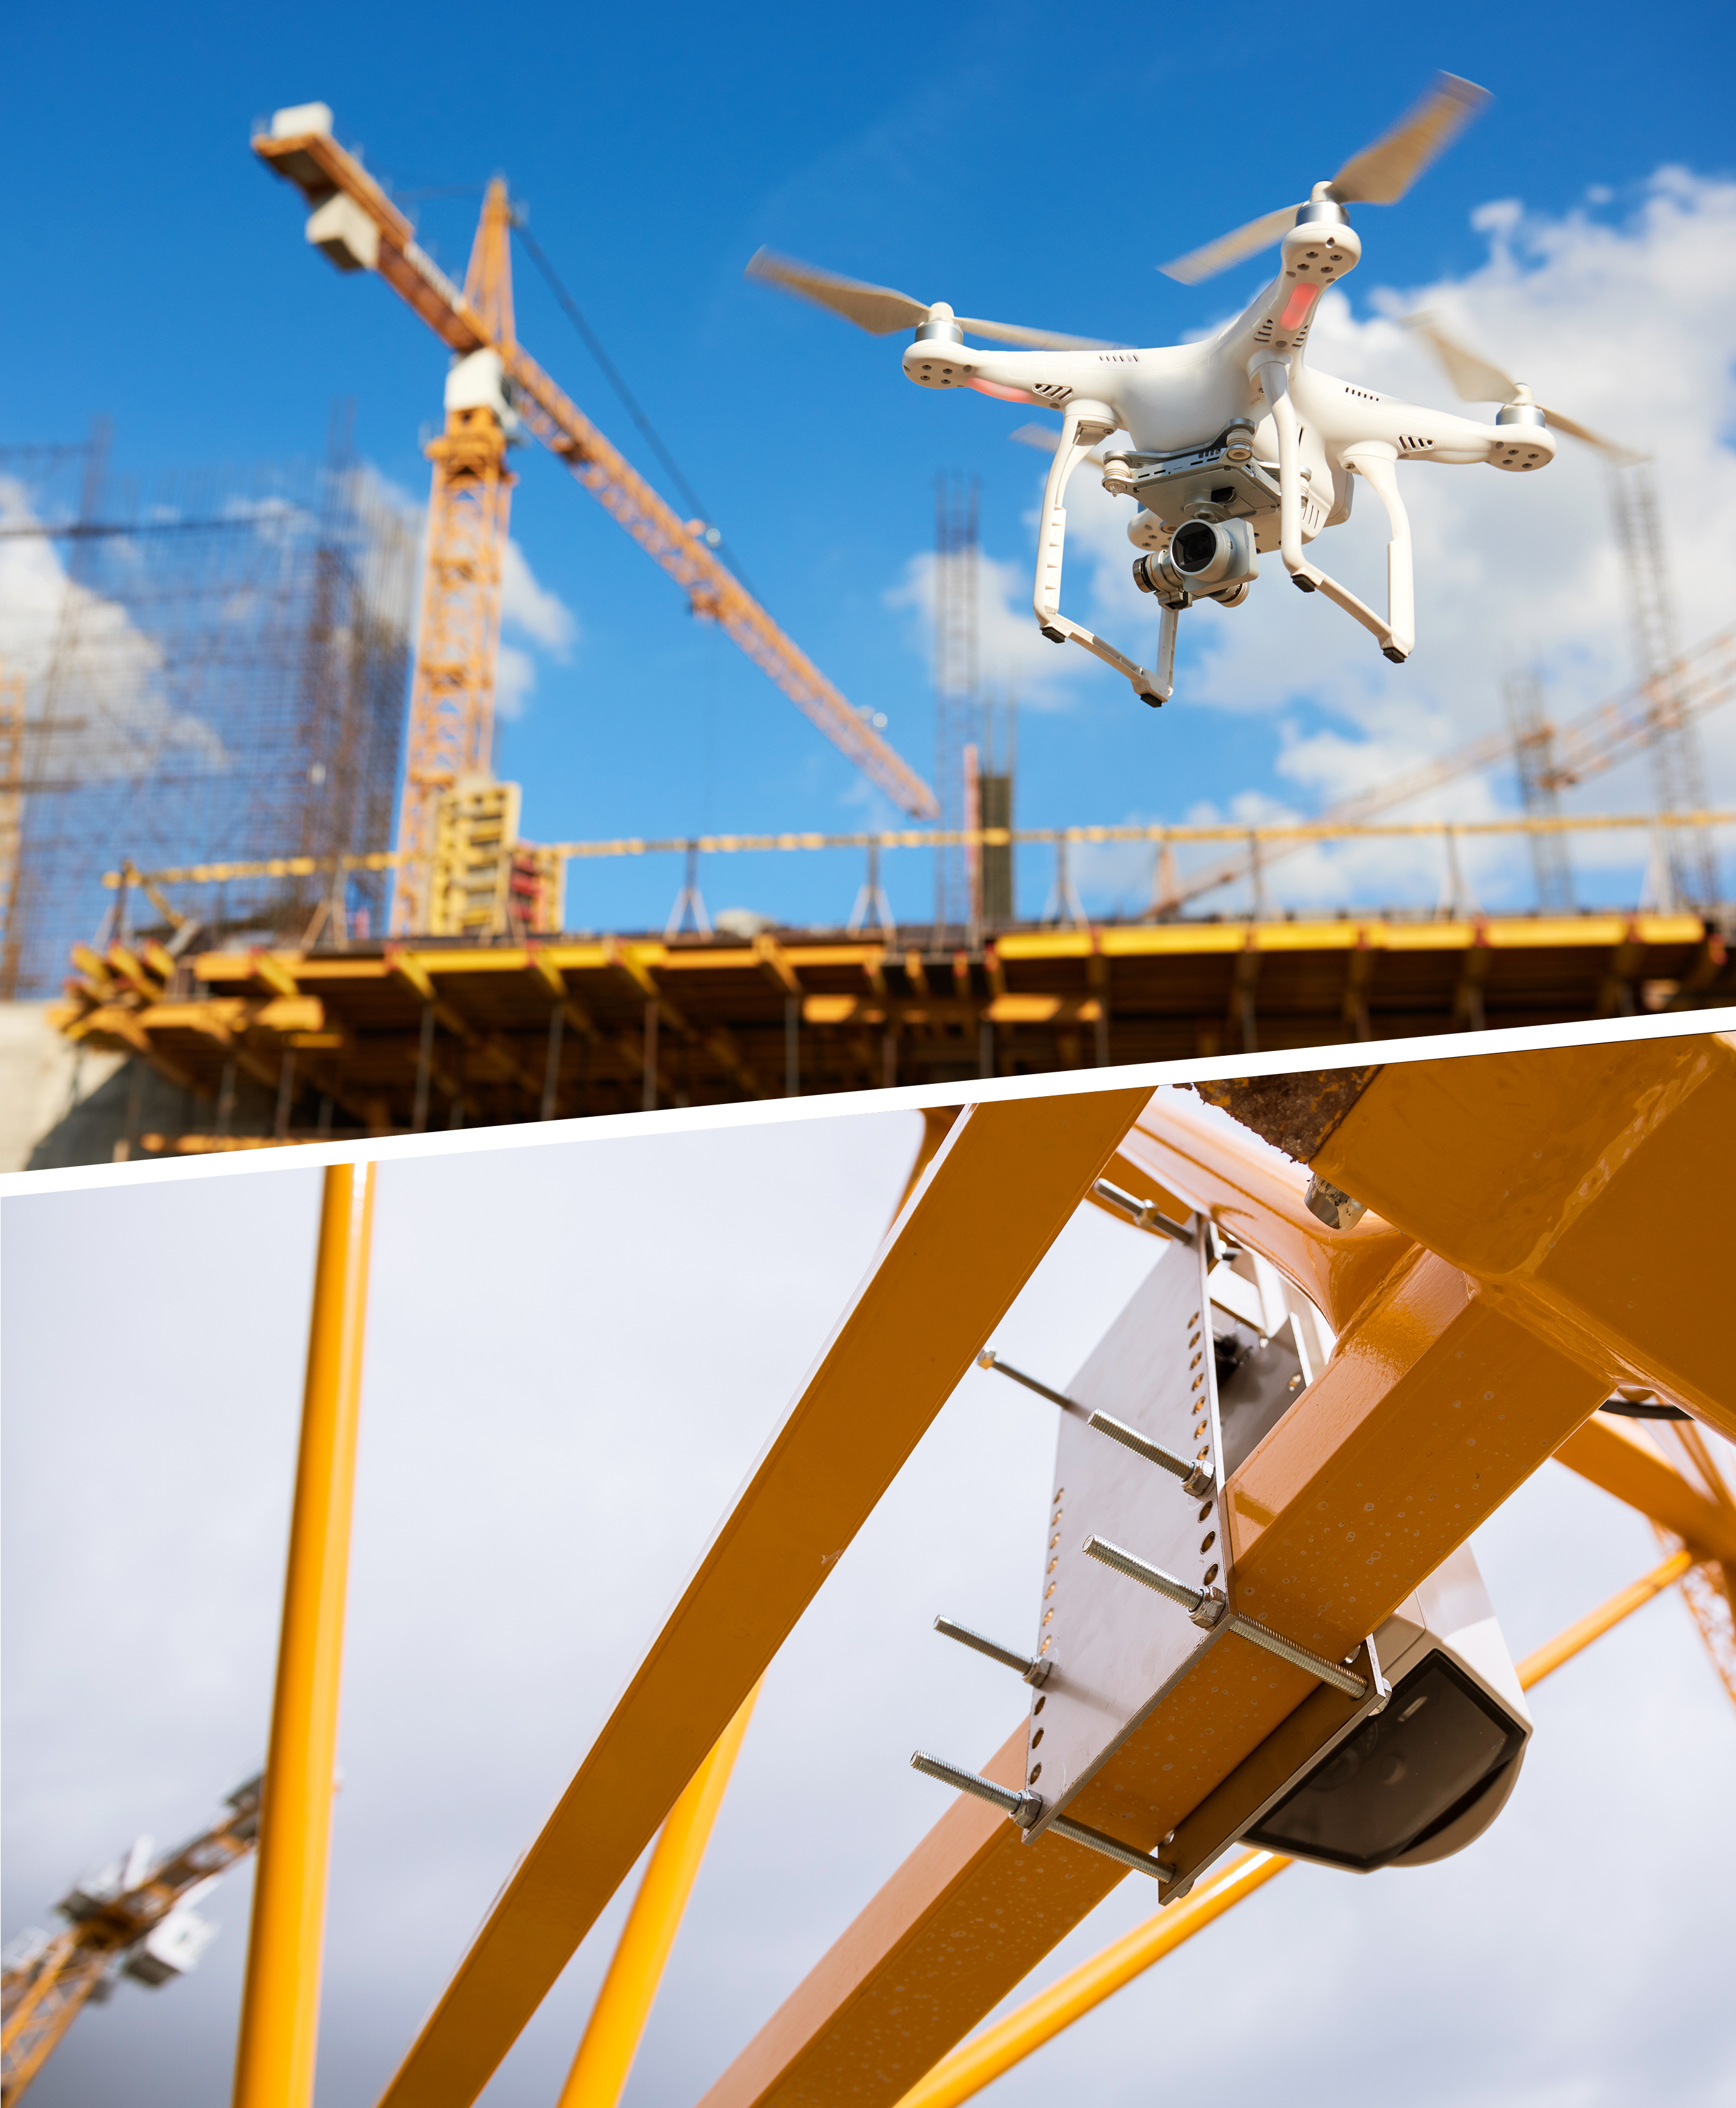 drone flying over a construction site and a crane camera installed at a crane